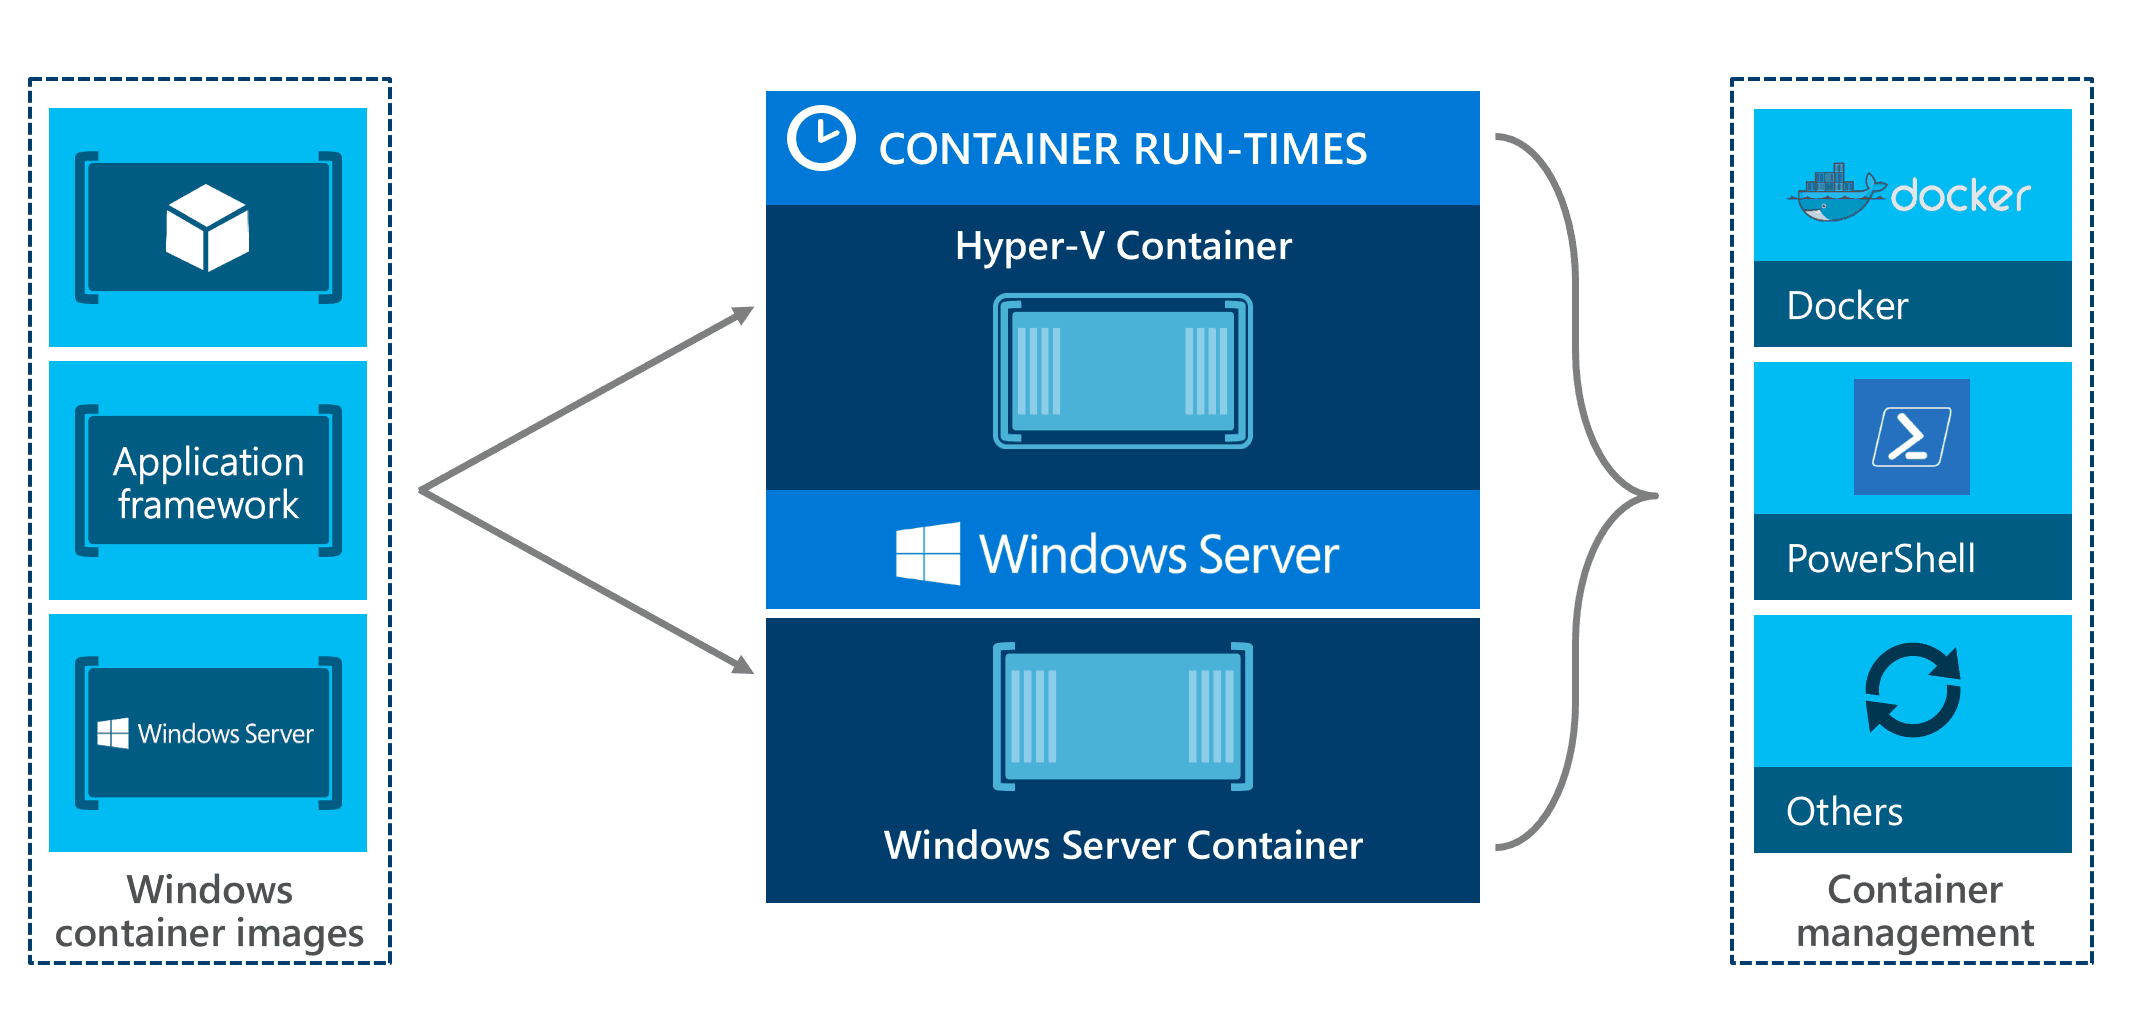 10 hidden Hyper-V features you should know about! - Thomas Maurer